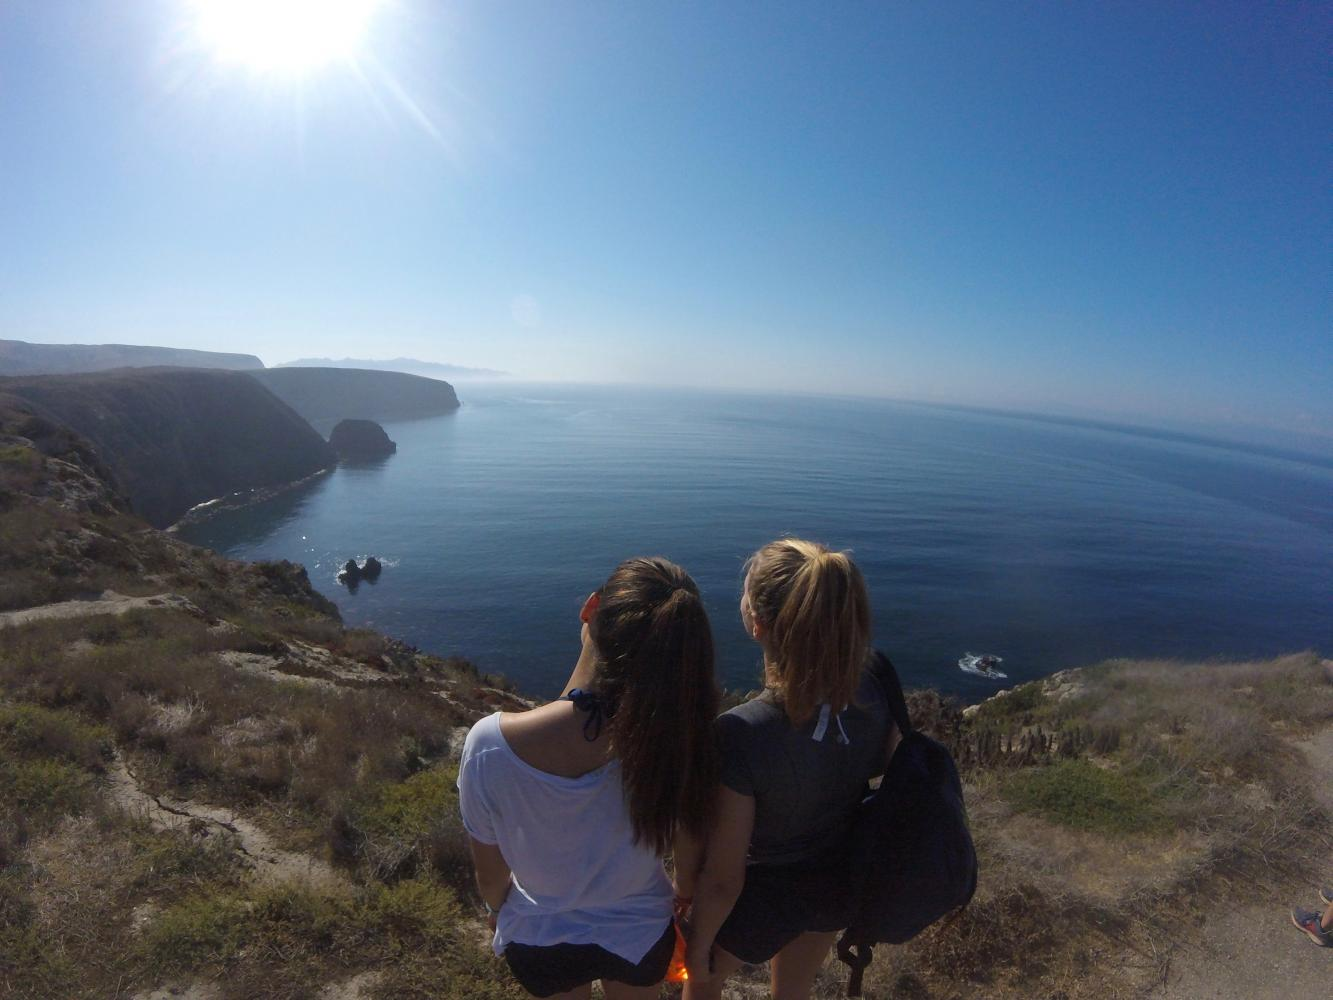 Erica Dick '18 and Locke Luhnow '18 take in the view after a hike on Santa Cruz Island. The seniors spent three days on the Channel Islands for their Fall Outing trip.